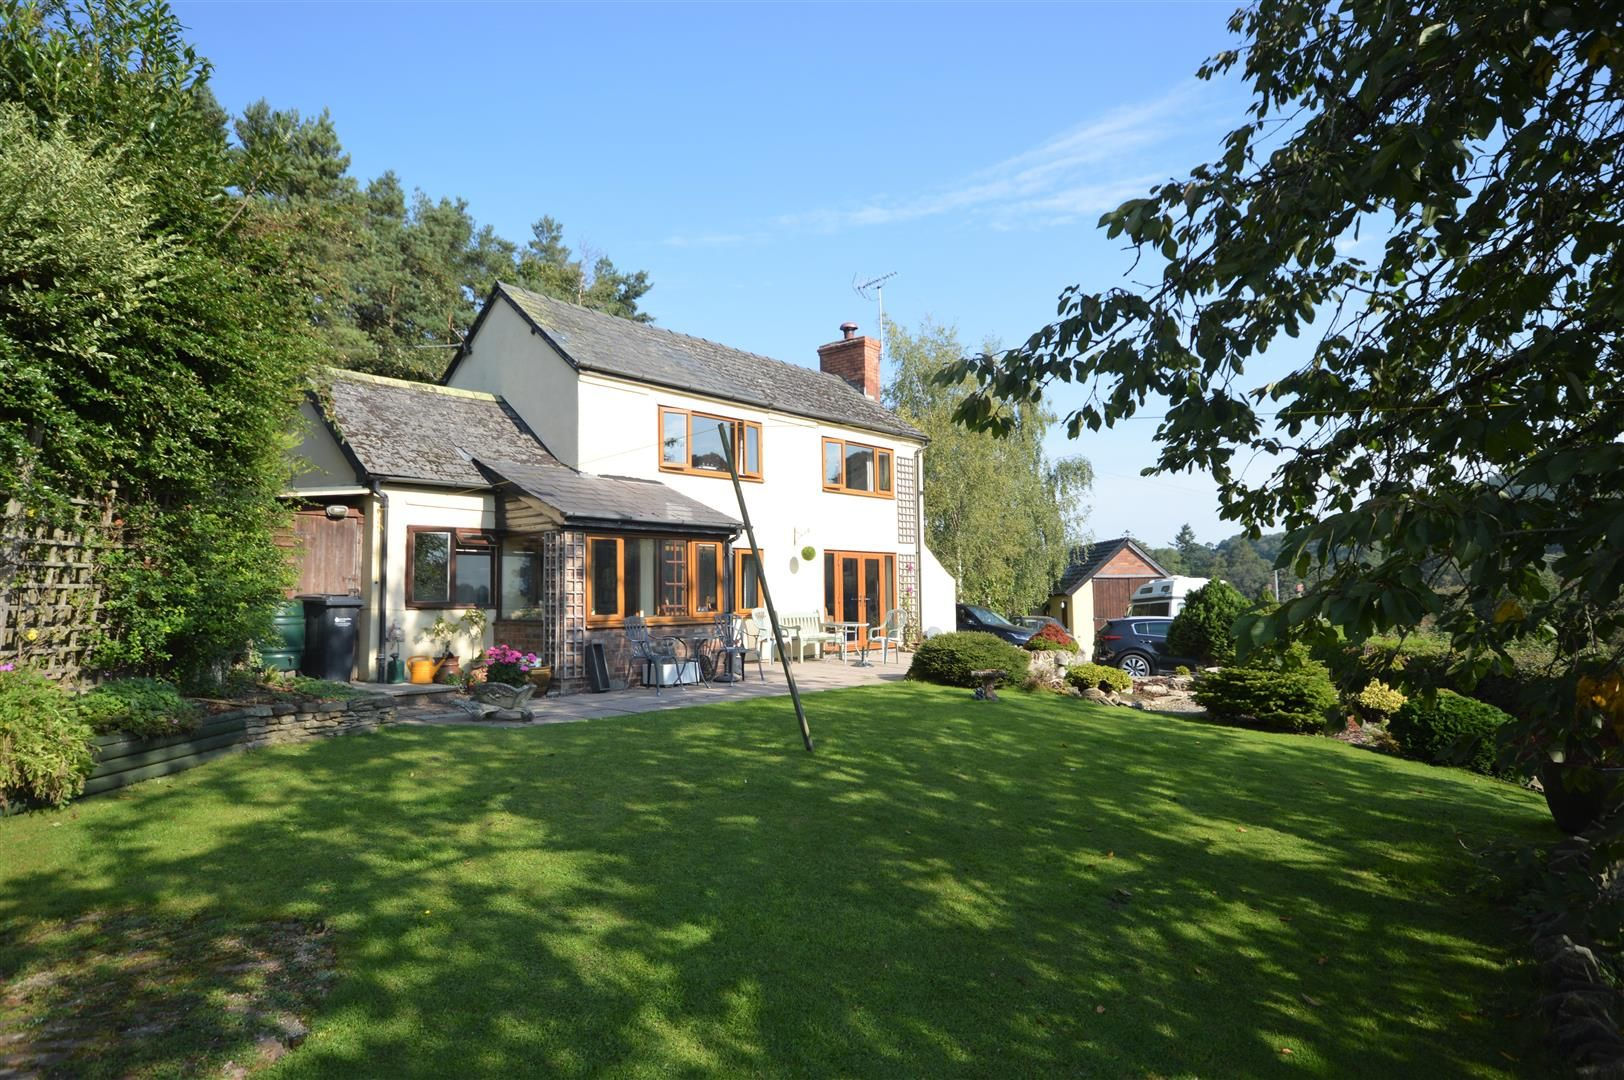 2 bed house for sale in Aymestrey, HR6